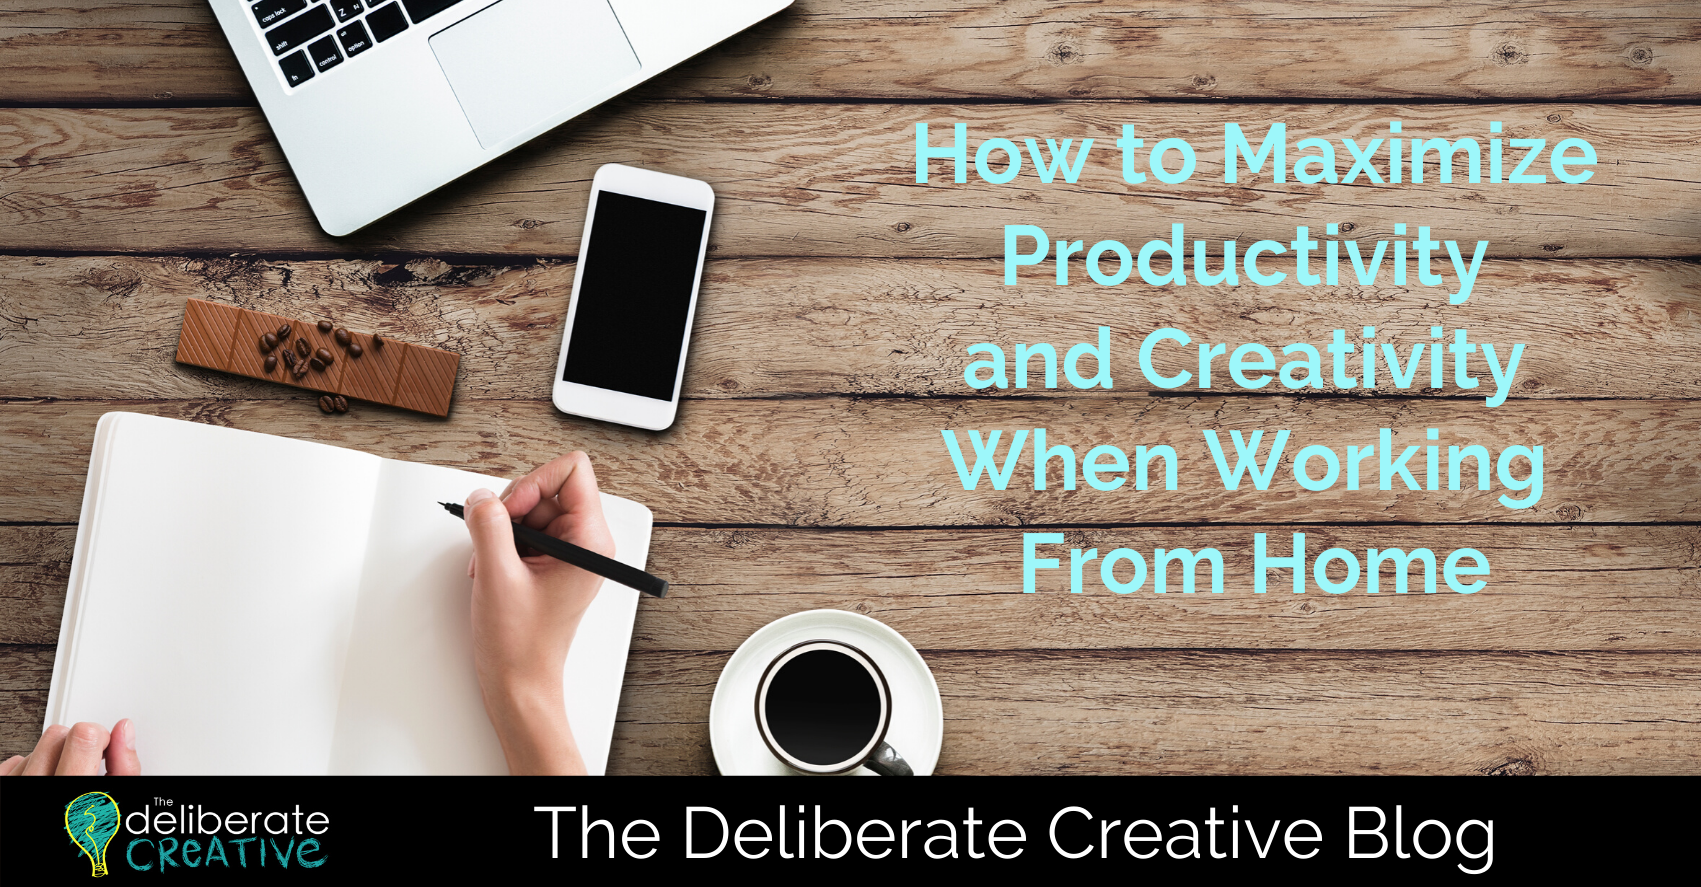 The Deliberate Creative Blog: How To Maximize Productivity and Creativity When Working From Home